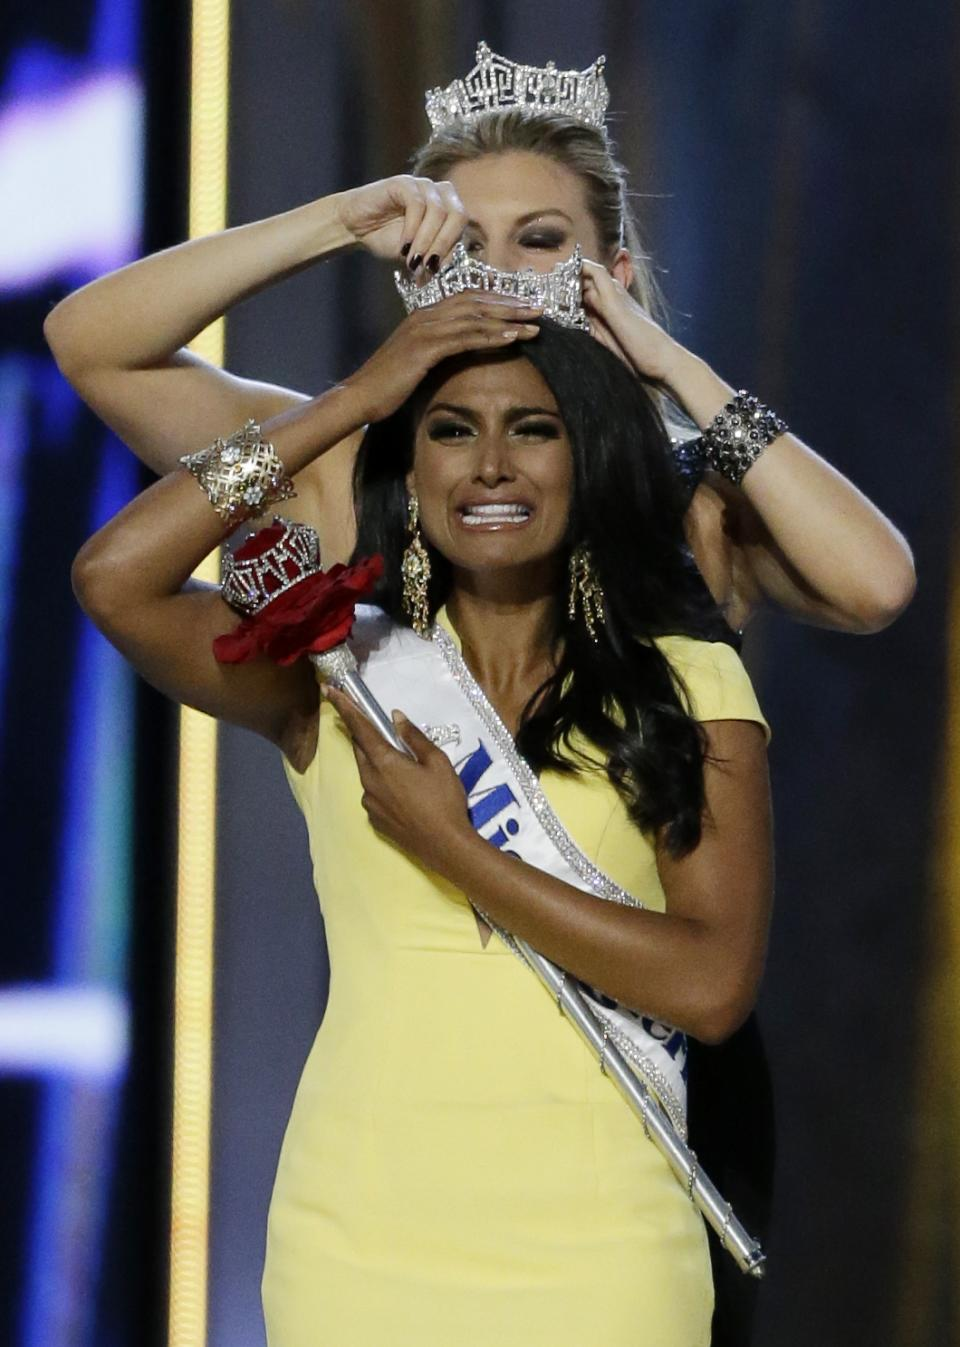 Miss New York Nina Davuluri, front, is crowned as Miss America 2014 by Miss America 2013 Mallory Hagan, Sunday, Sept. 15, 2013, in Atlantic City, N.J. (AP Photo/Julio Cortez)